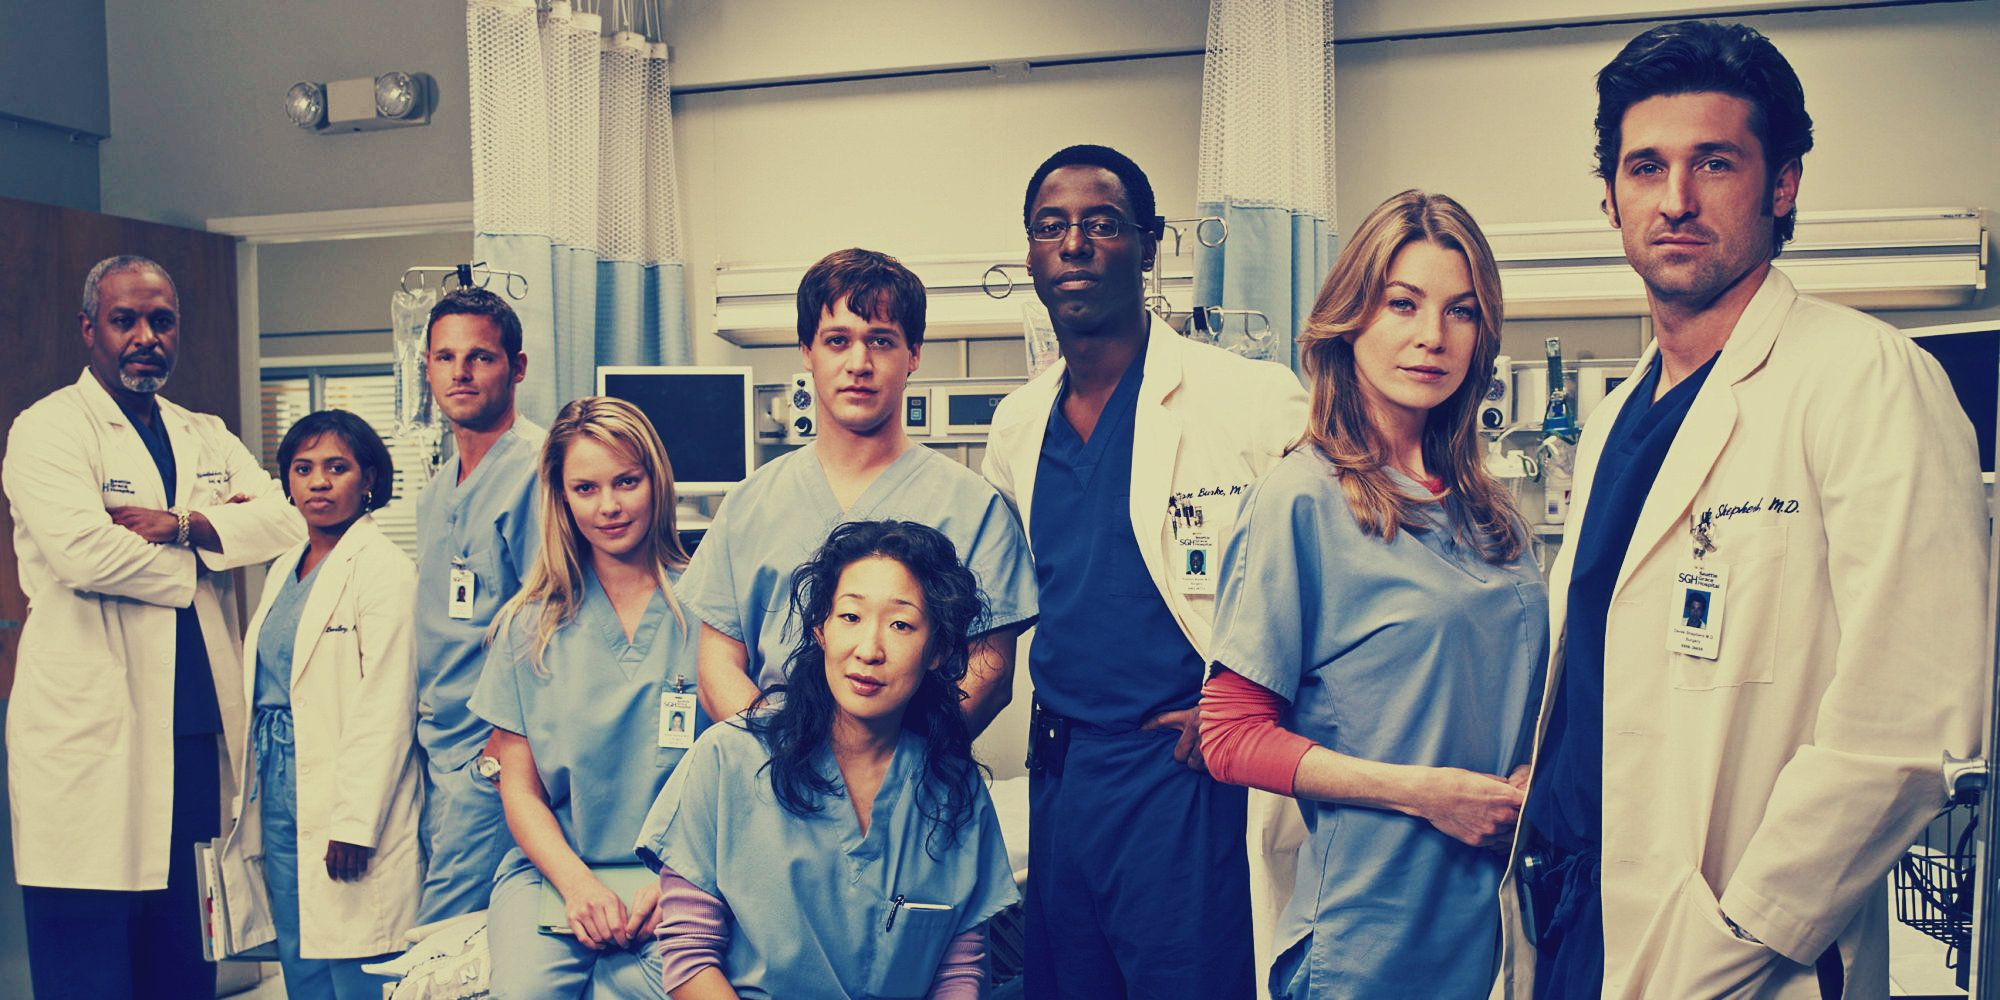 Greys anatomy series 6